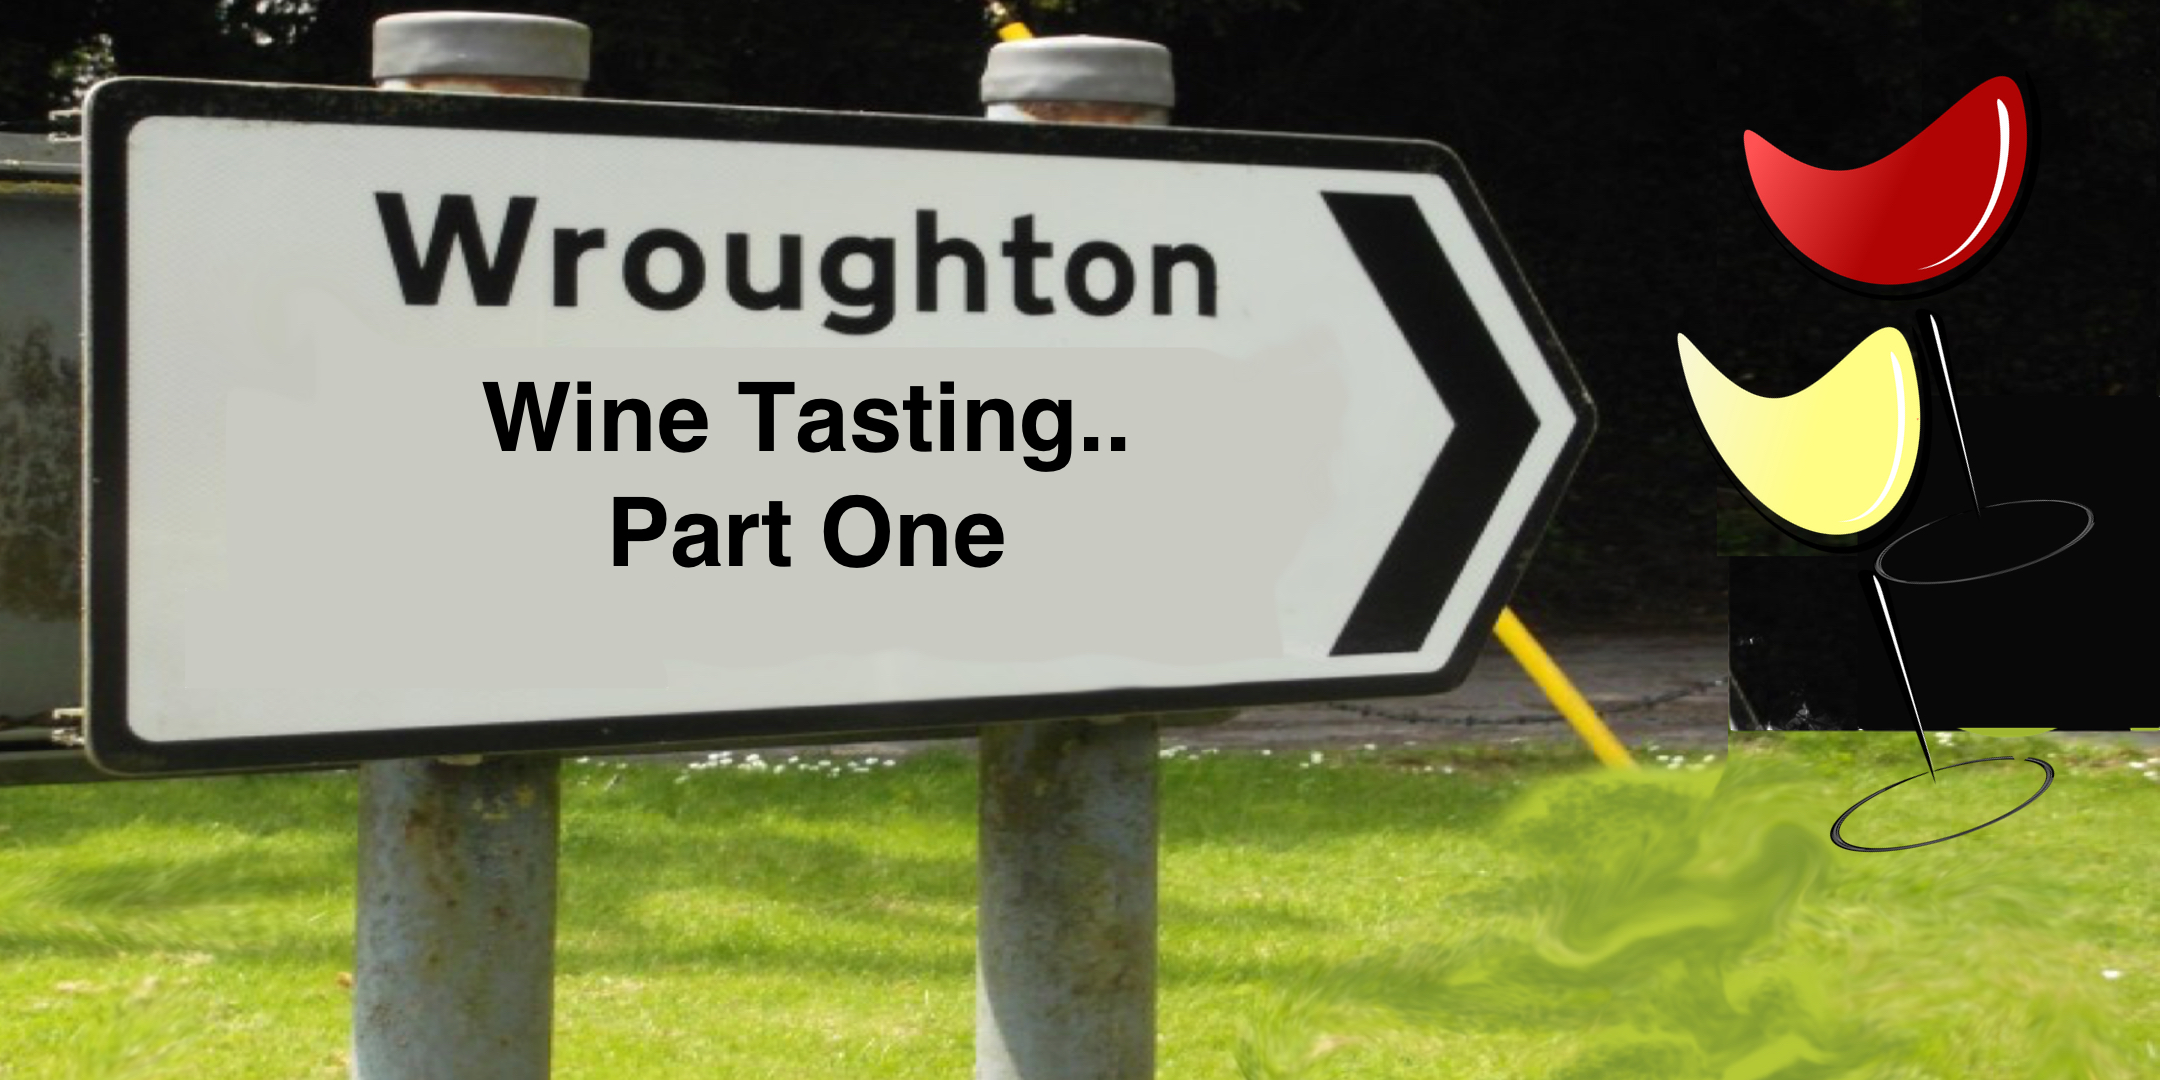 Wroughton Wine Tasting - Part One